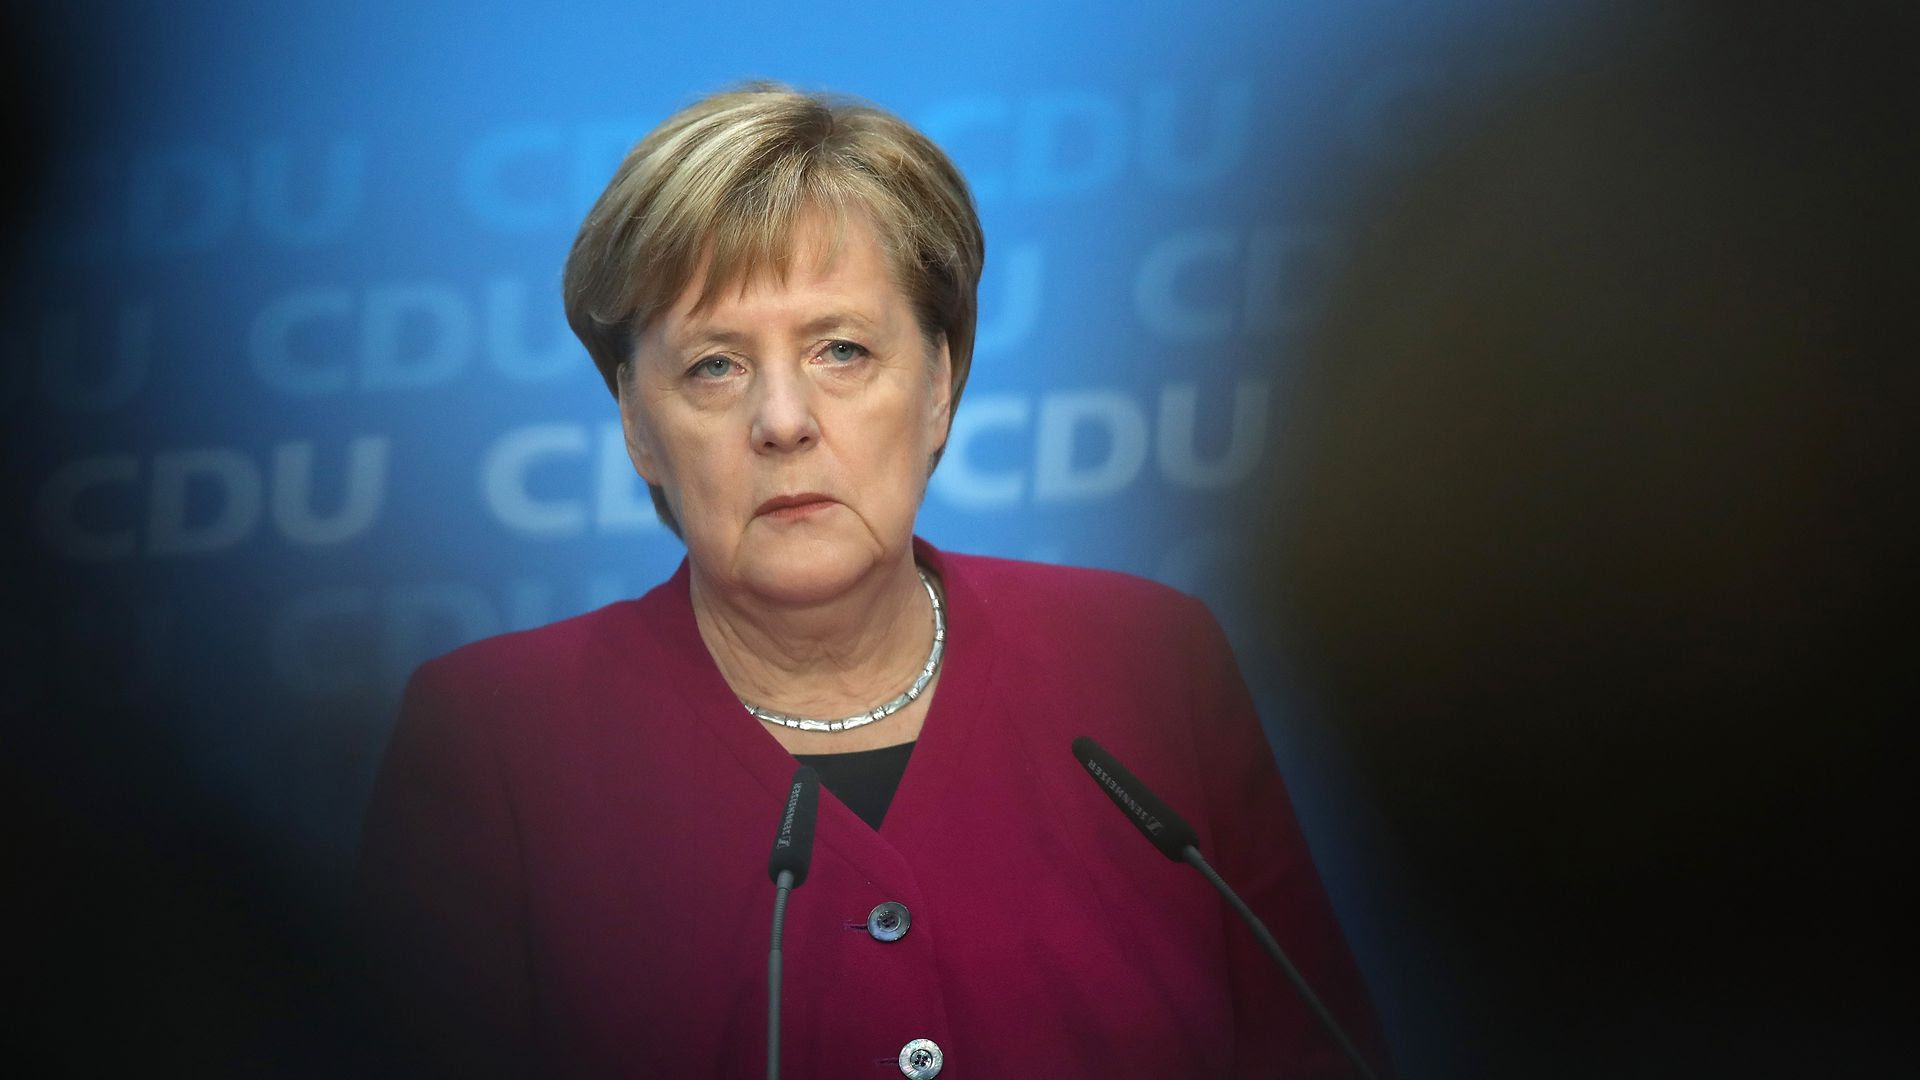 Angela Merkel at a podium